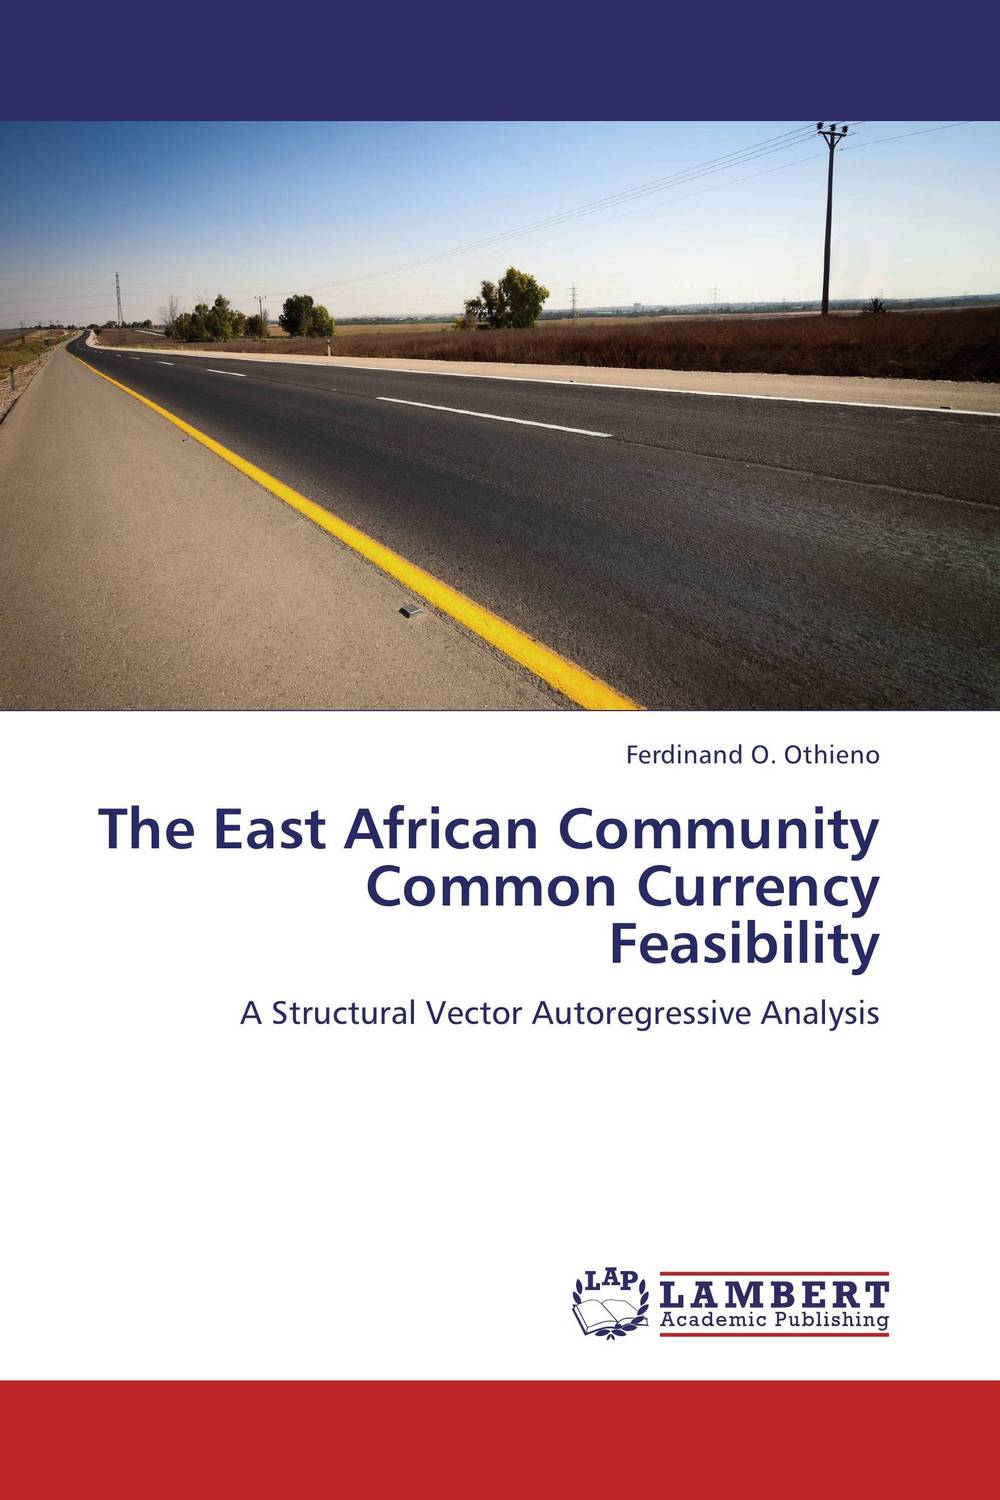 The East African Community Common Currency Feasibility the common link